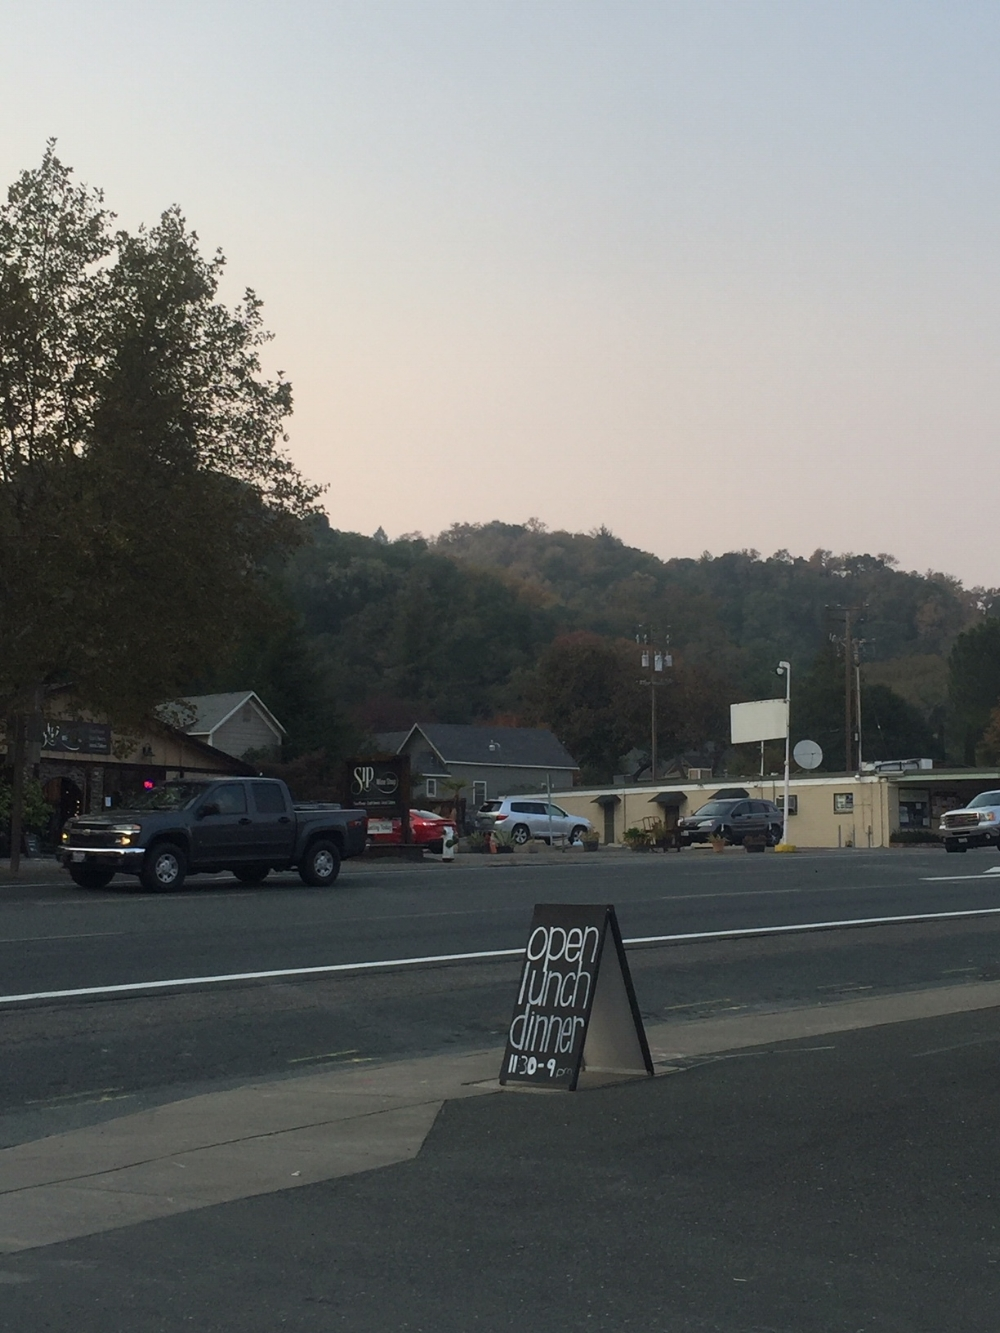 Hopland on a Sunday afternoon - home of the 1st micro-brewery in California